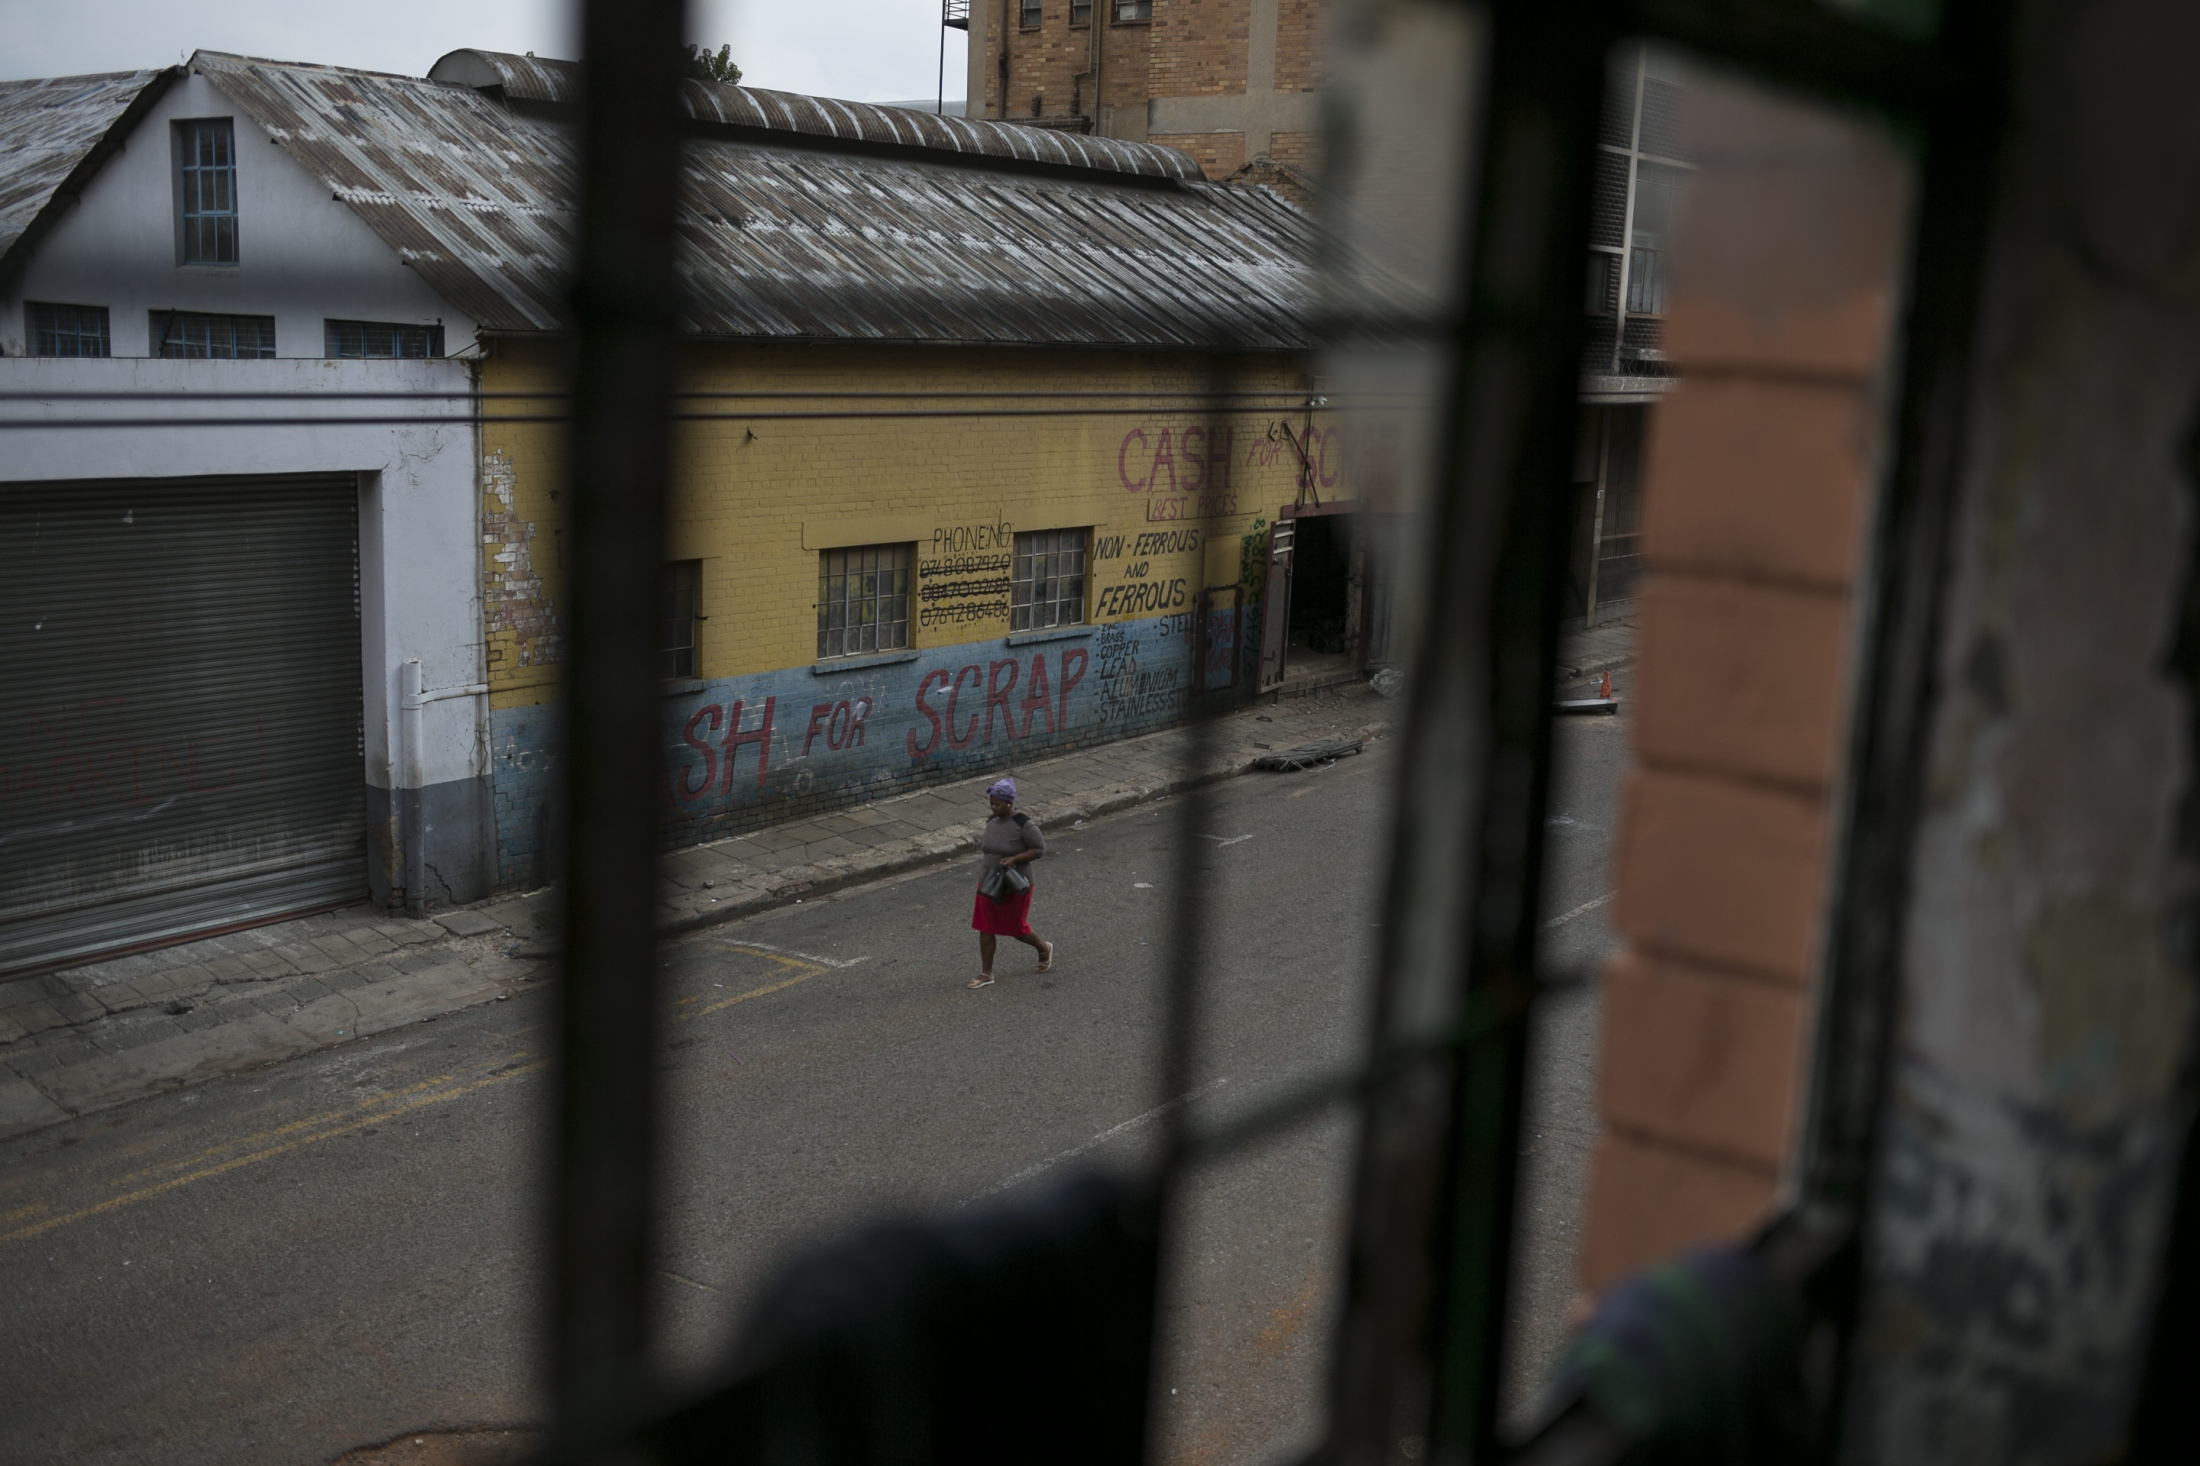 A woman walks past an abandoned building occupied by squatters. March 30, 2018.